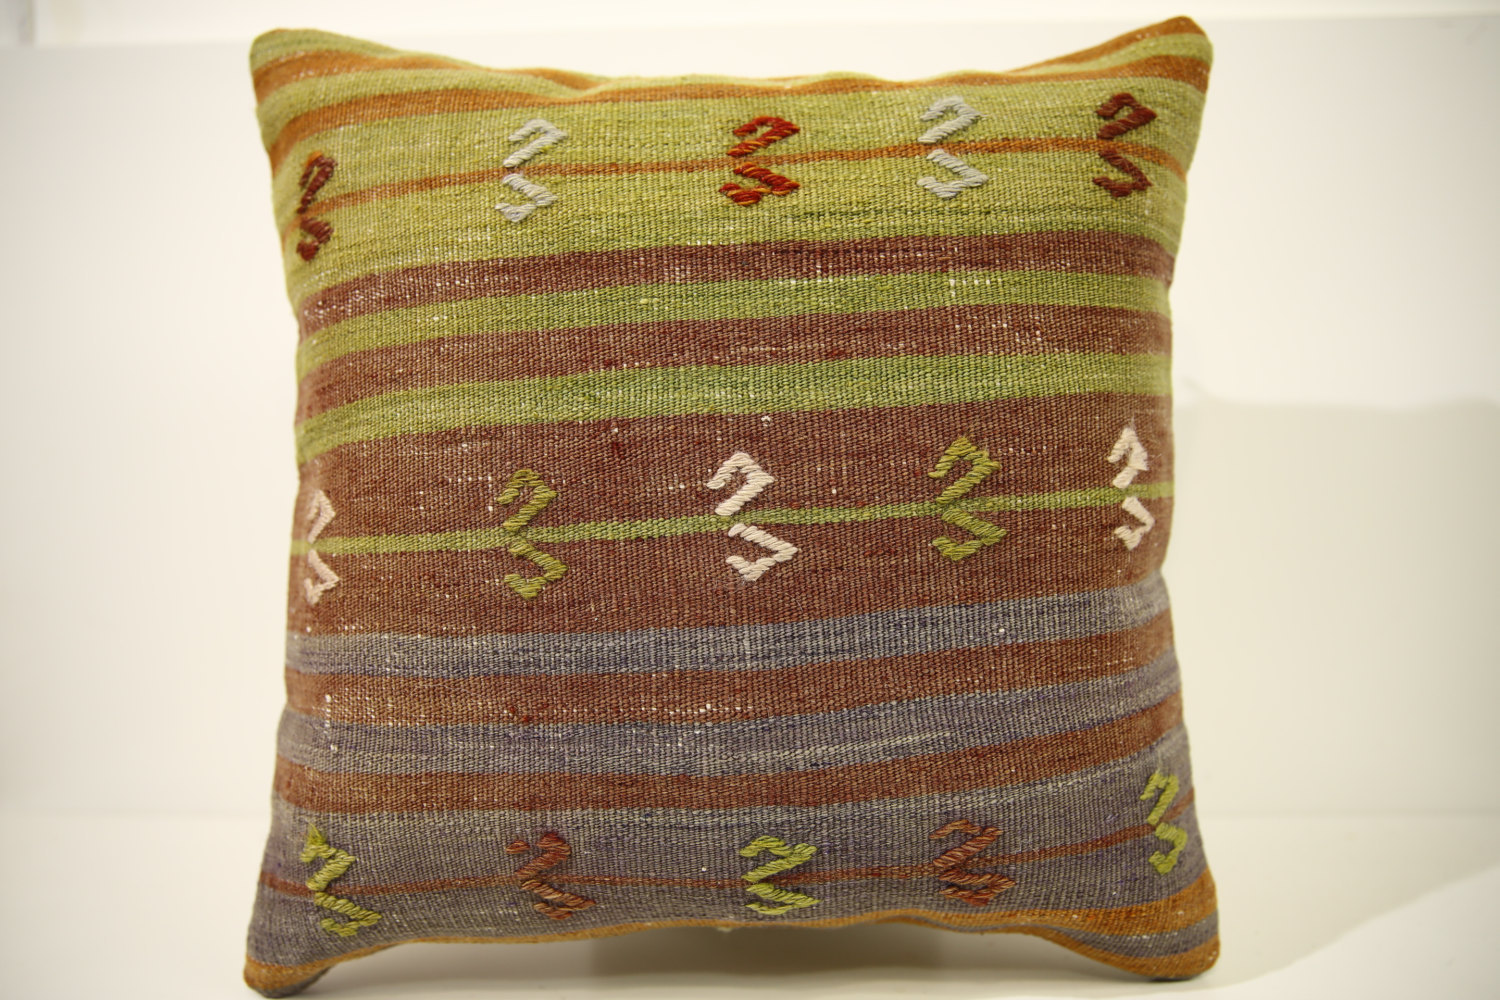 Kilim Pillows | 16x16 | Turkish pillows | 1513 | Accent Pillow,Decorative Pillow